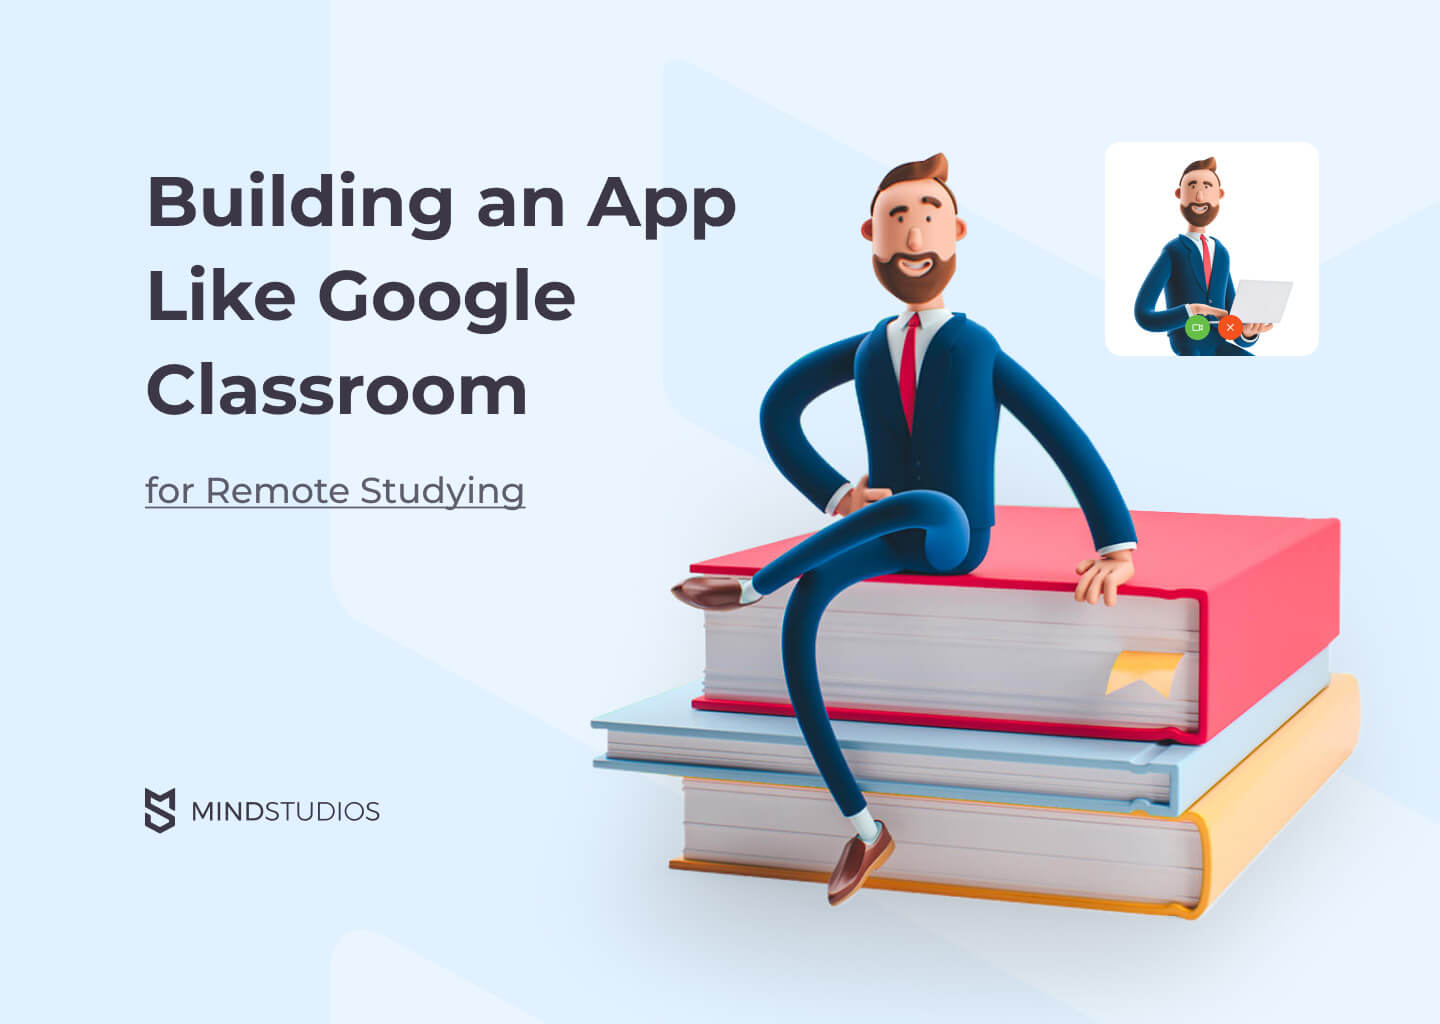 Building an App Like Google Classroom for Remote Studying